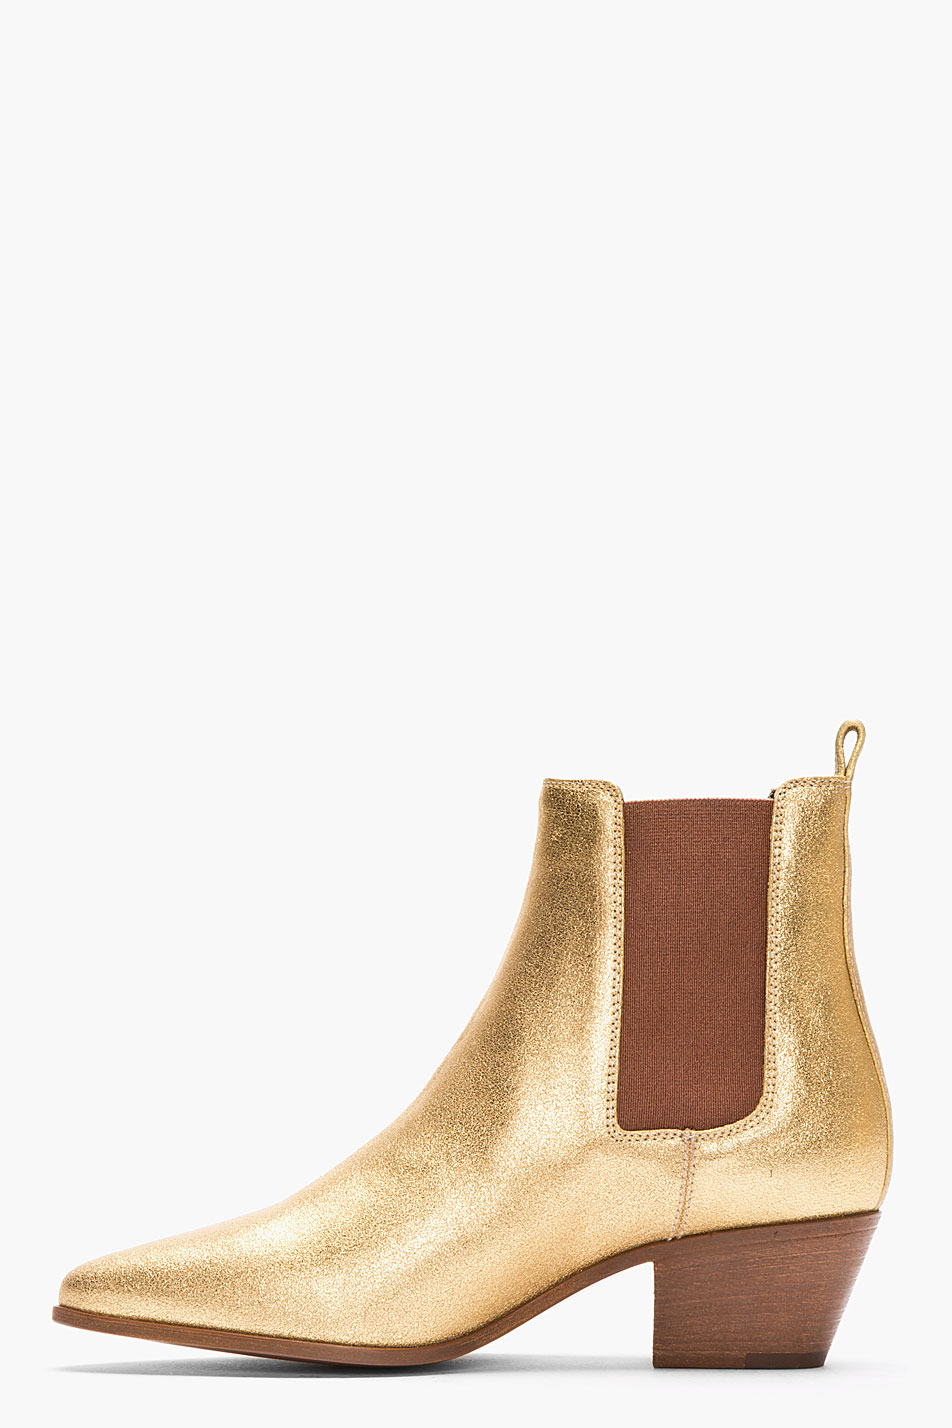 Saint Laurent Metallic Gold Leather Chelsea Ankle Boots In